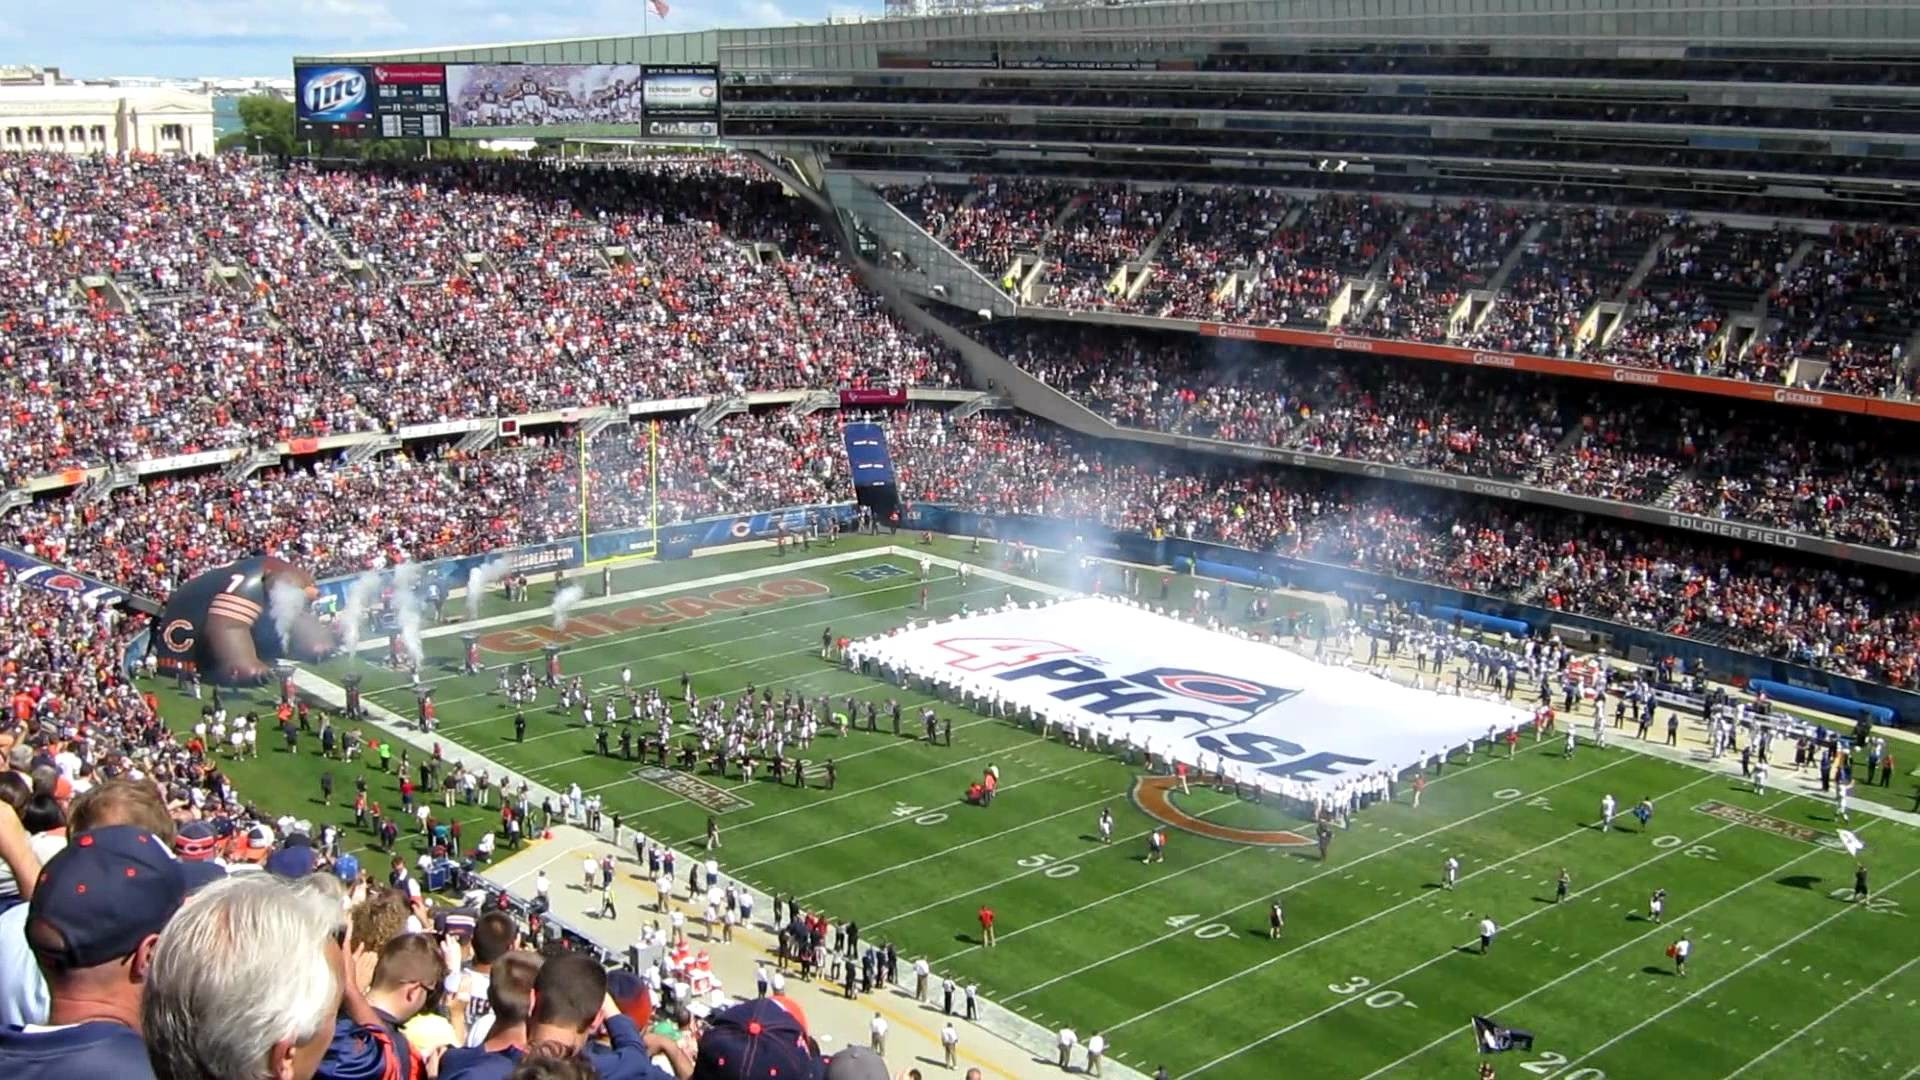 1920x1080 Awesome Flyover at Soldier Field for Chicago Bears Home Opener 2012 versus  Colts - YouTube